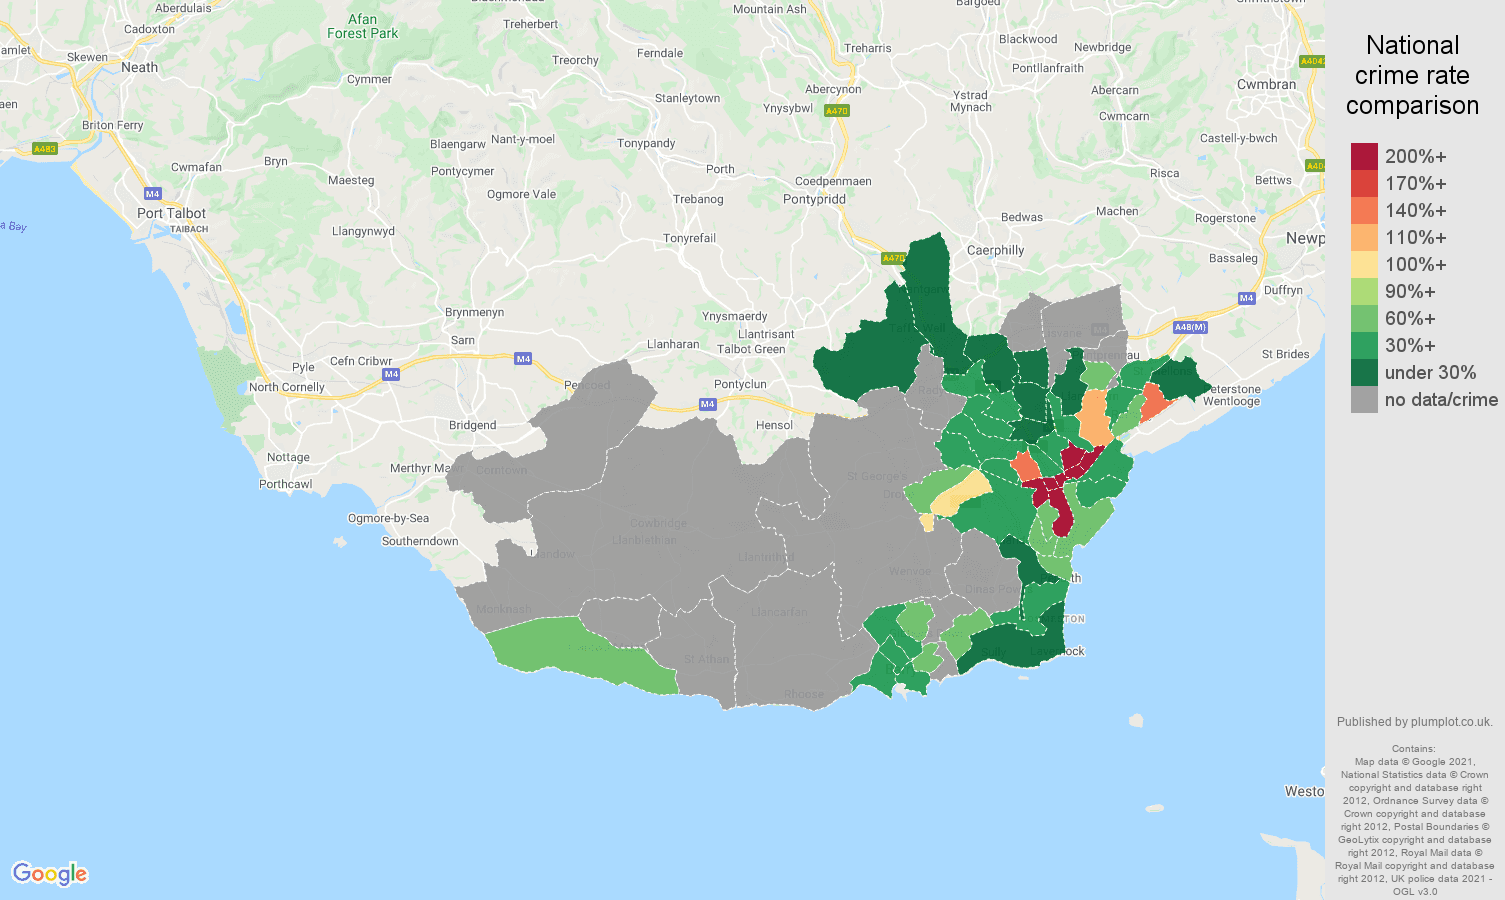 South Glamorgan theft from the person crime rate comparison map